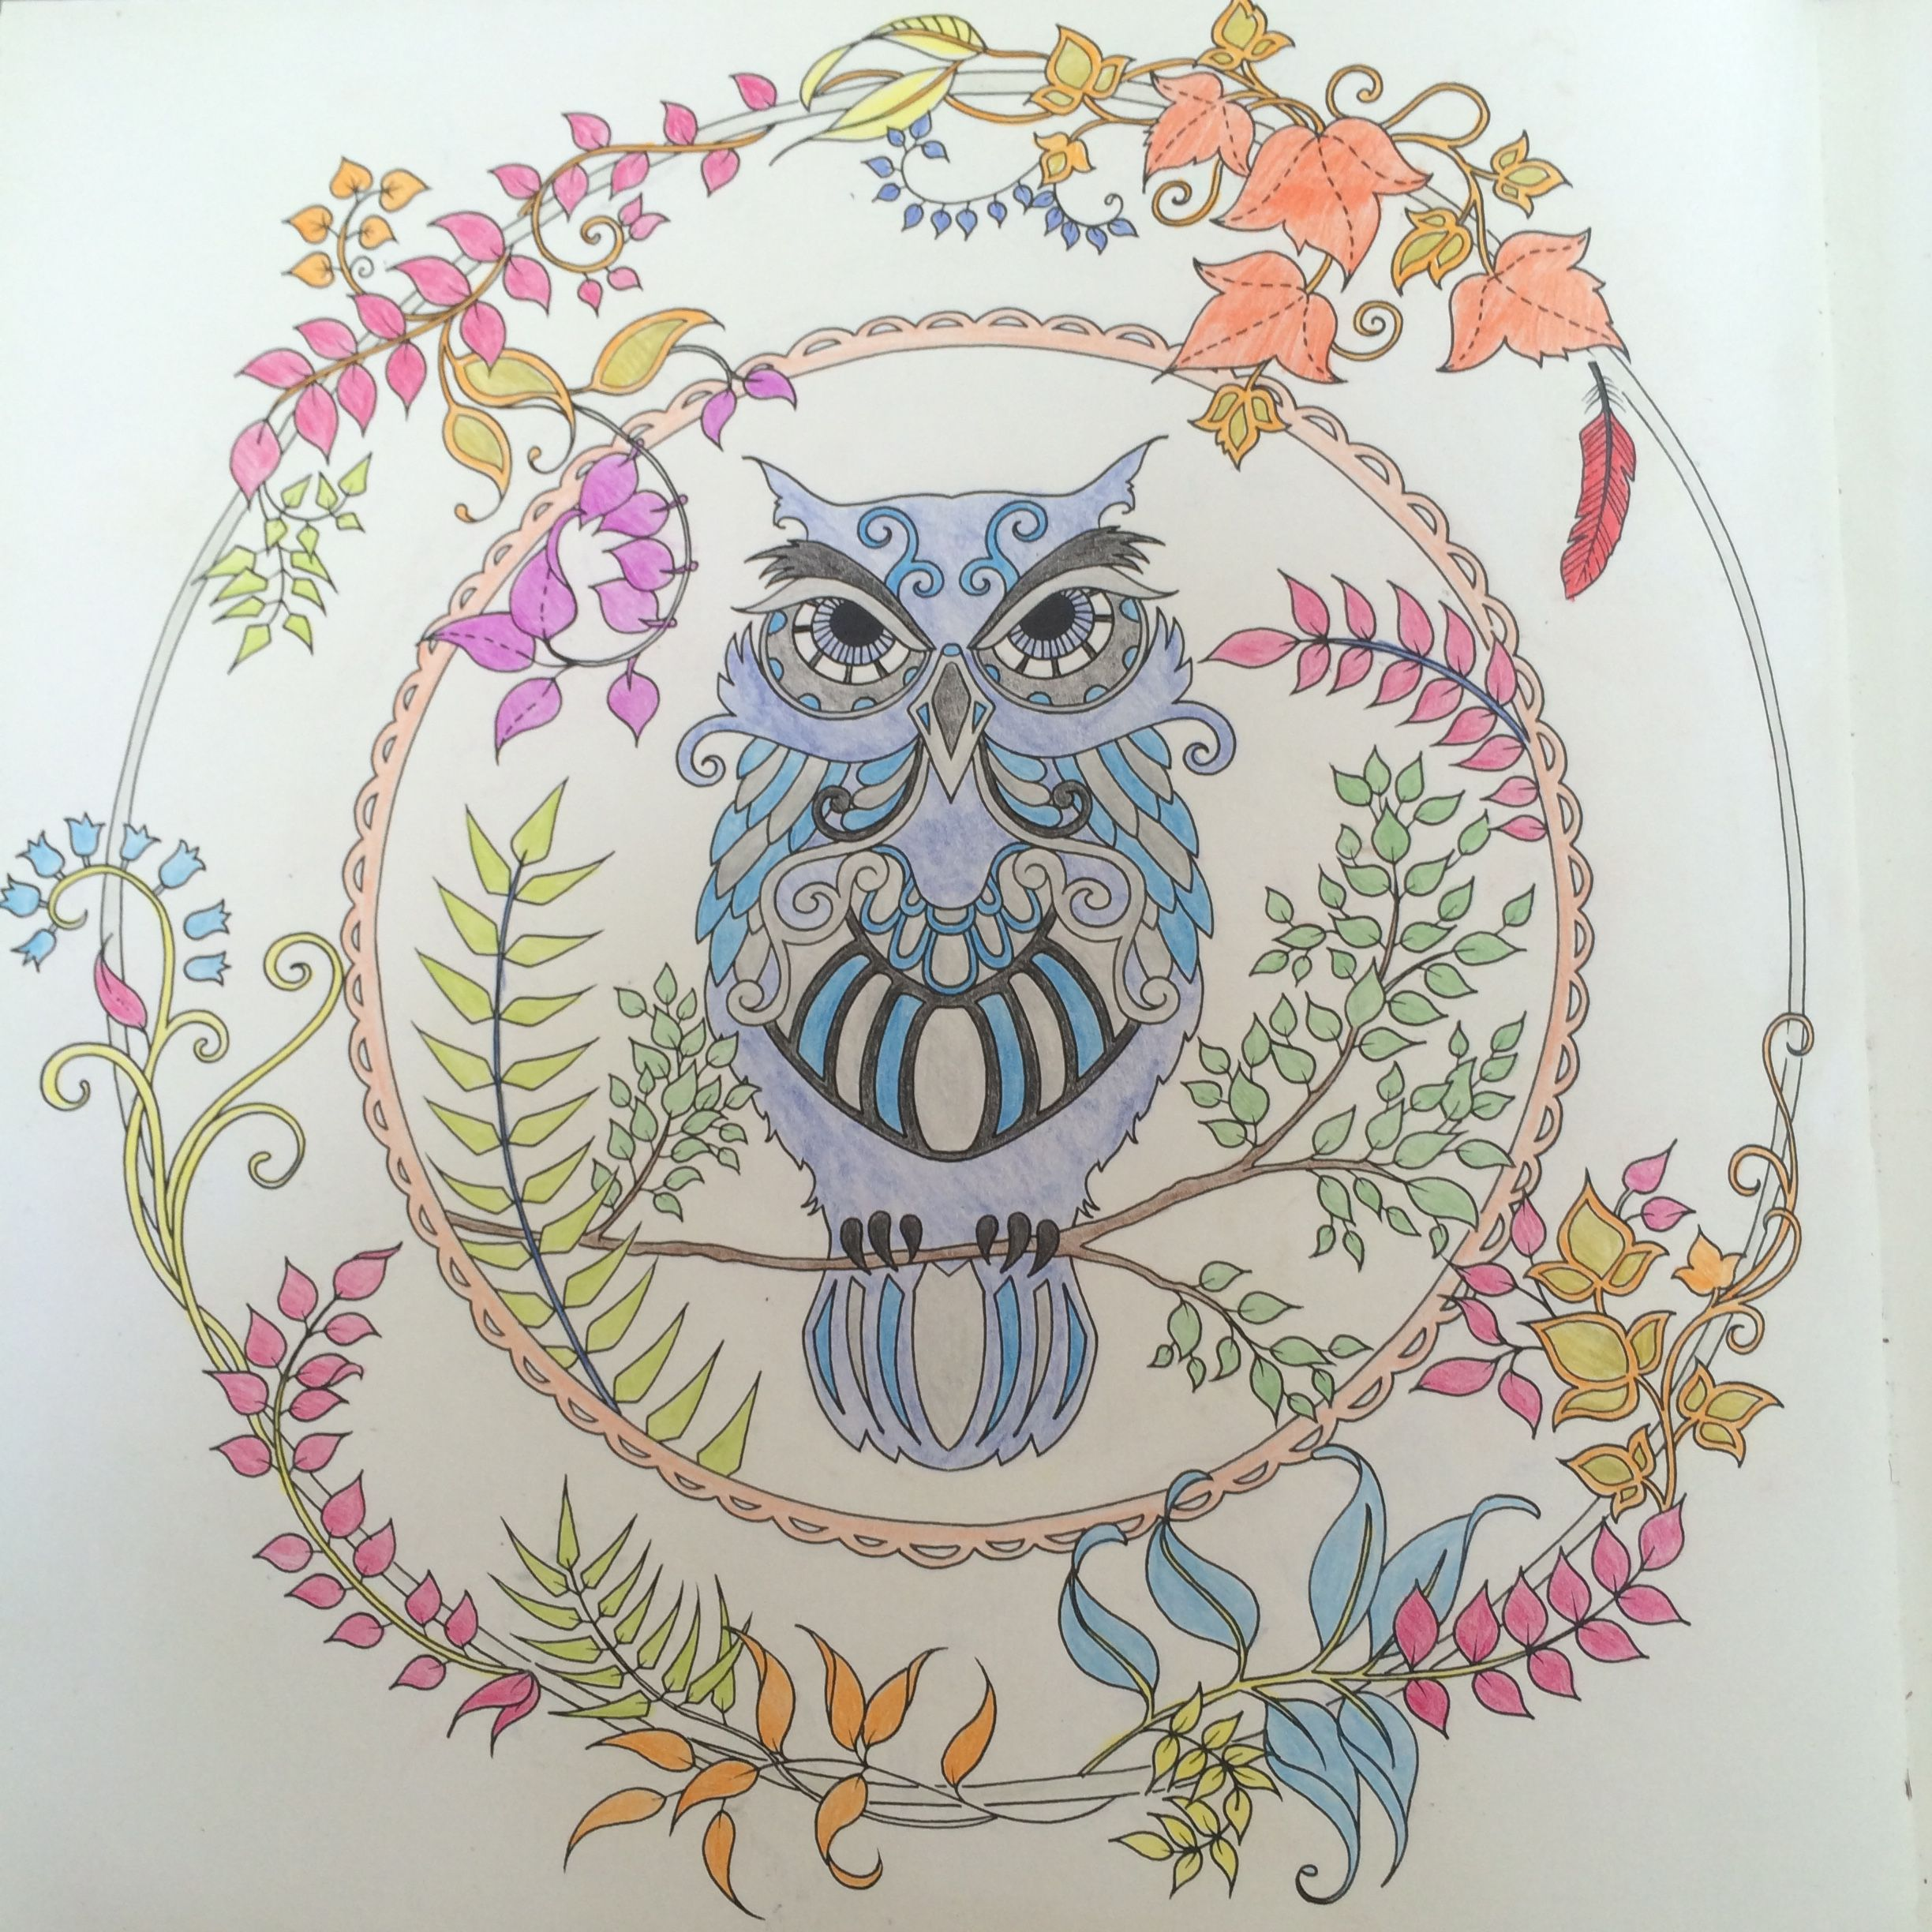 Enchanted Forest Adult Colouring Book Johanna Basford Fabercastell Enchantedforest Coloring